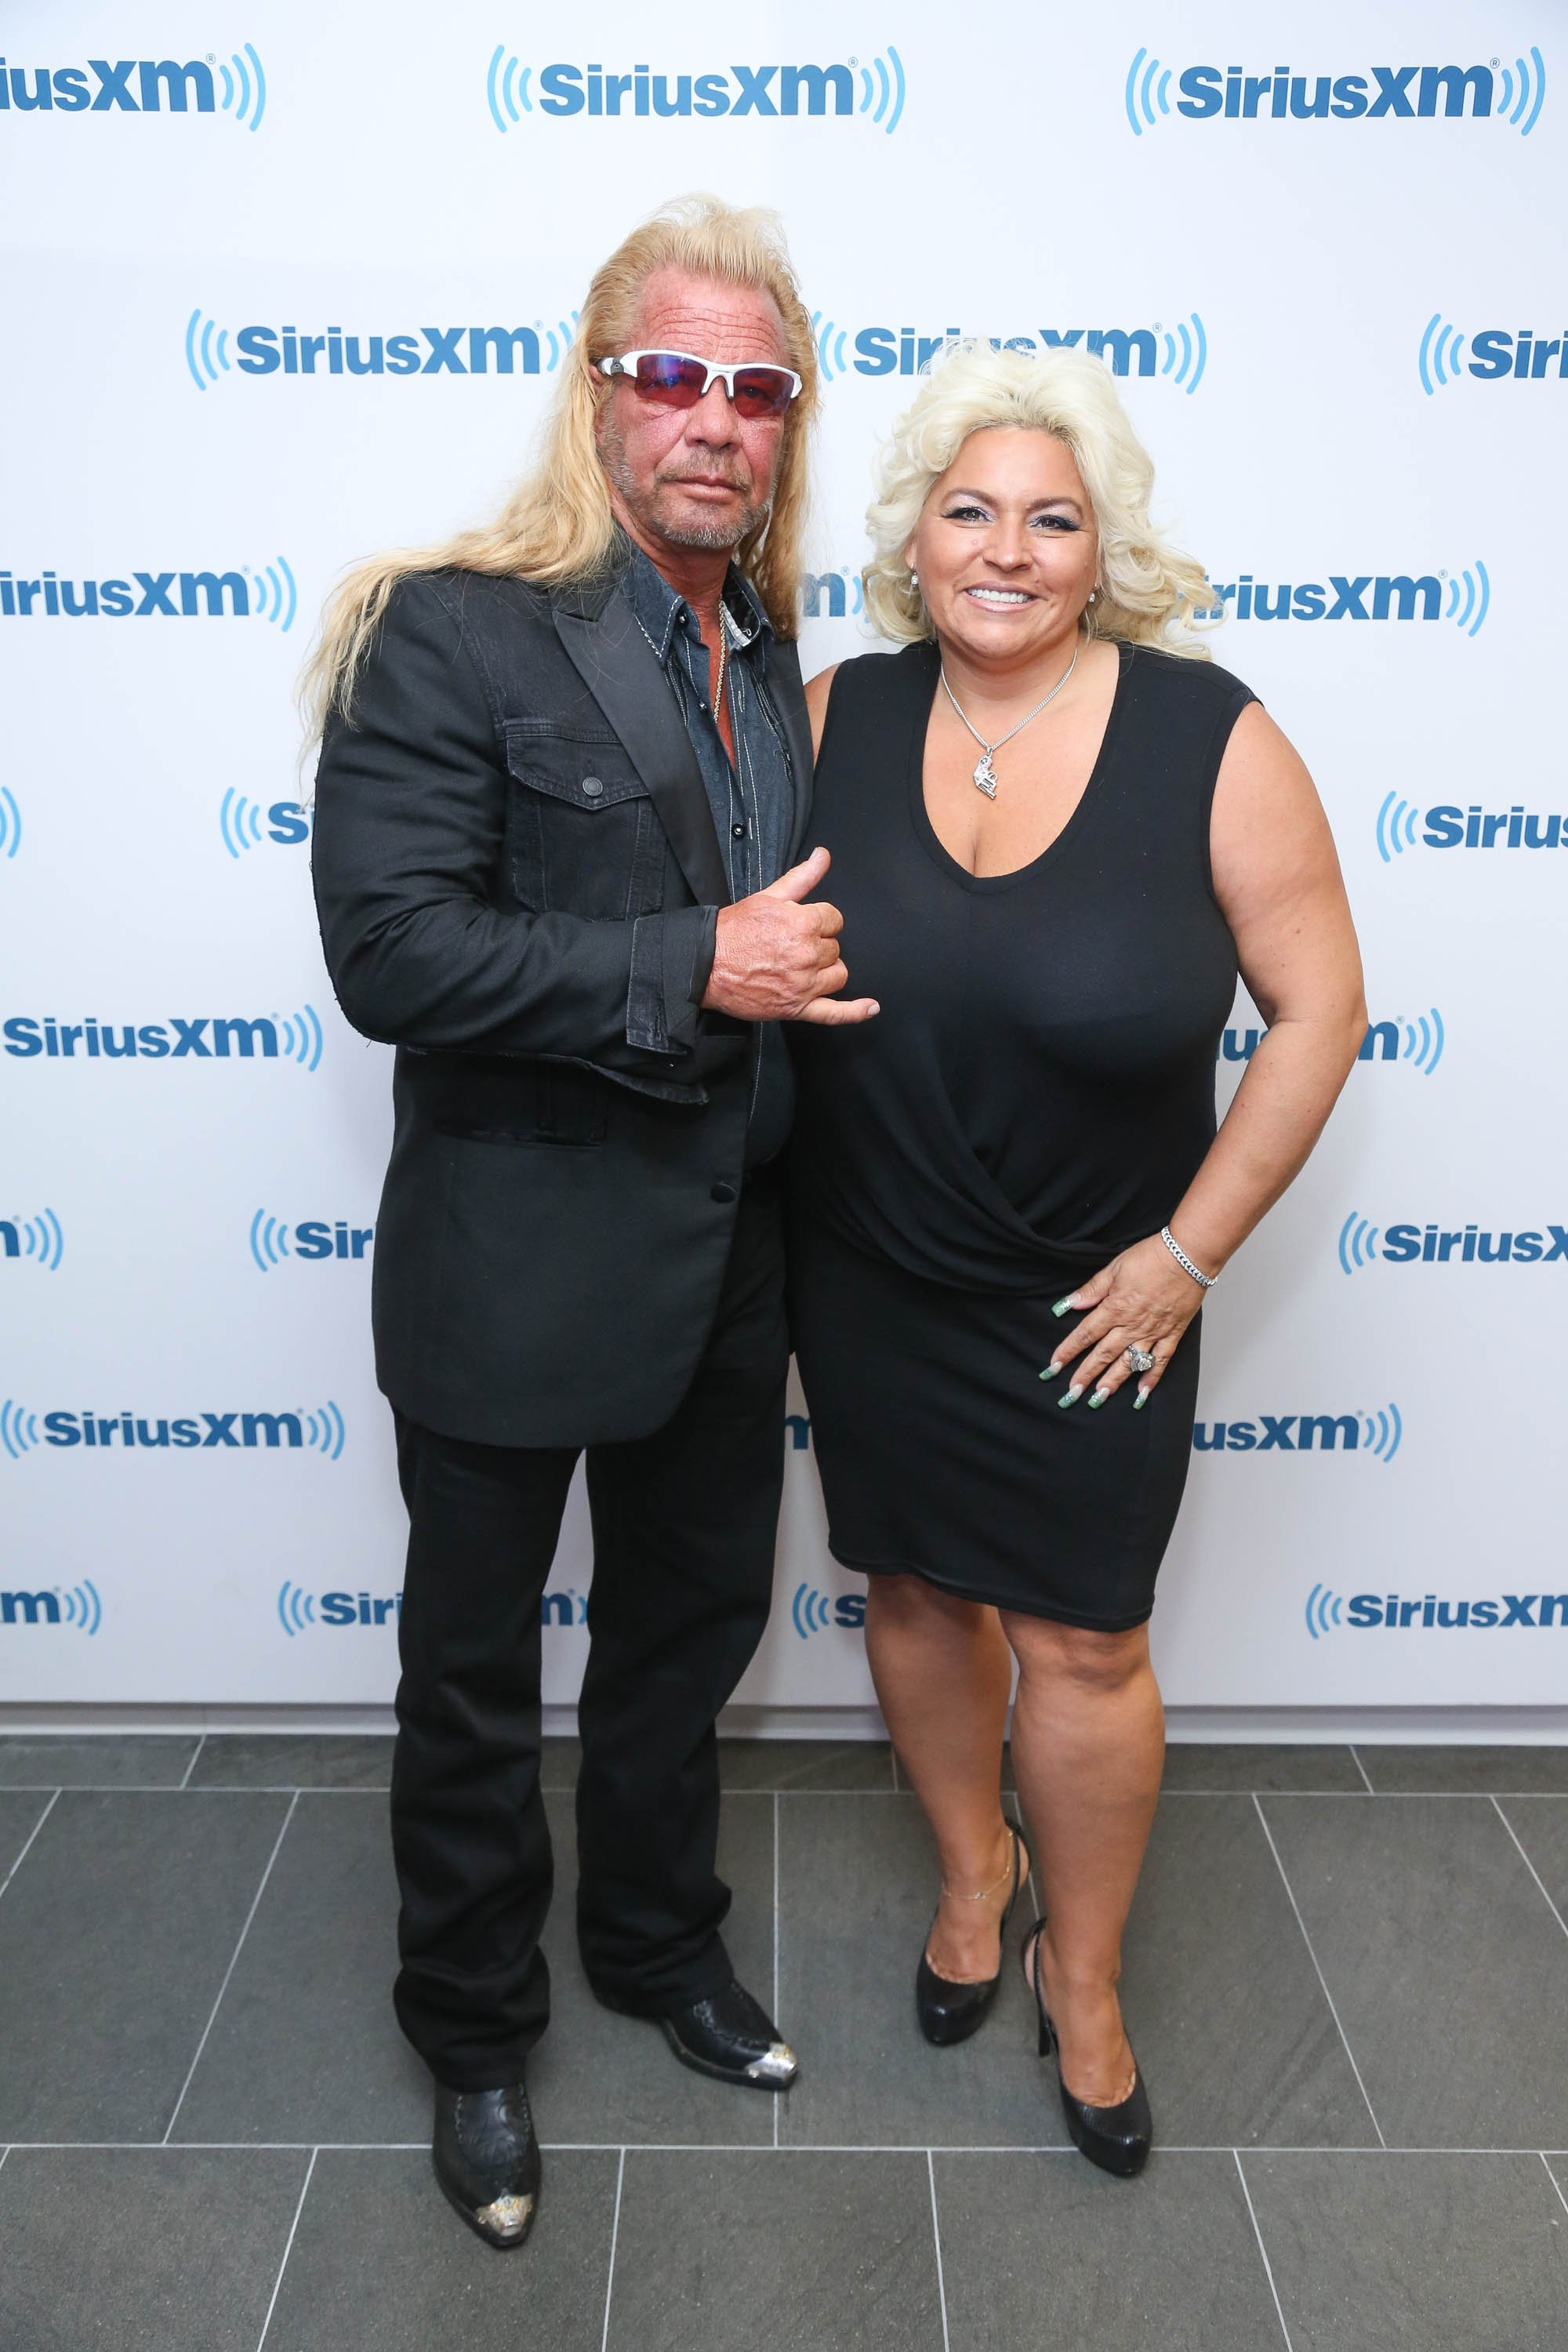 Dog the Bounty Hunter, Duane Chapman and wife Beth Chapman visit at SiriusXM Studios on June 9, 2014, in New York City. | Source: Getty Images.